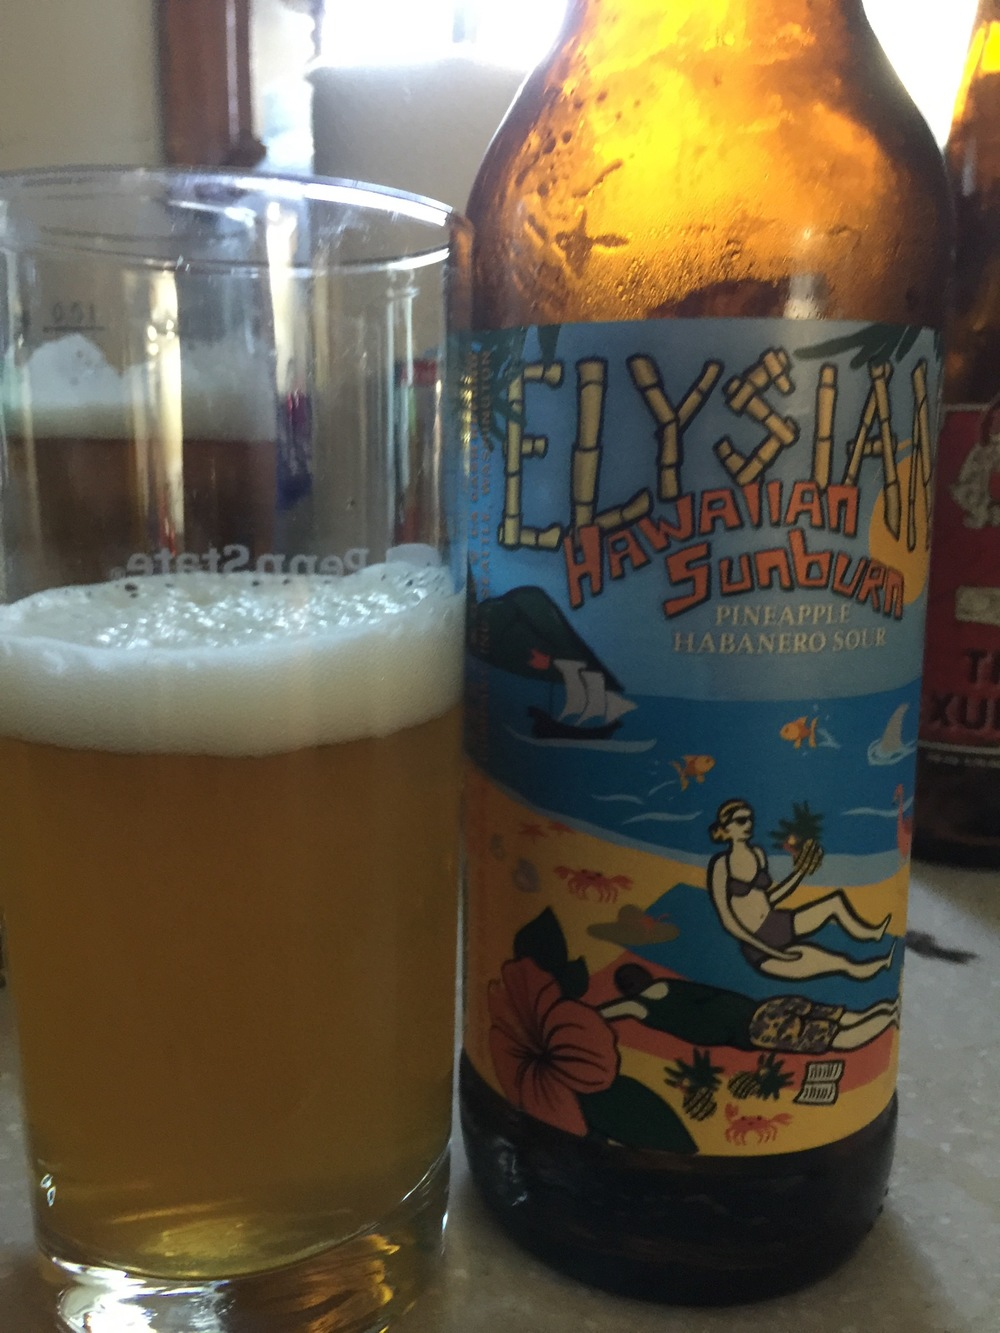 Elysian Brewing Hawaiian Sunburn Pineapple Habenero Sour Ale